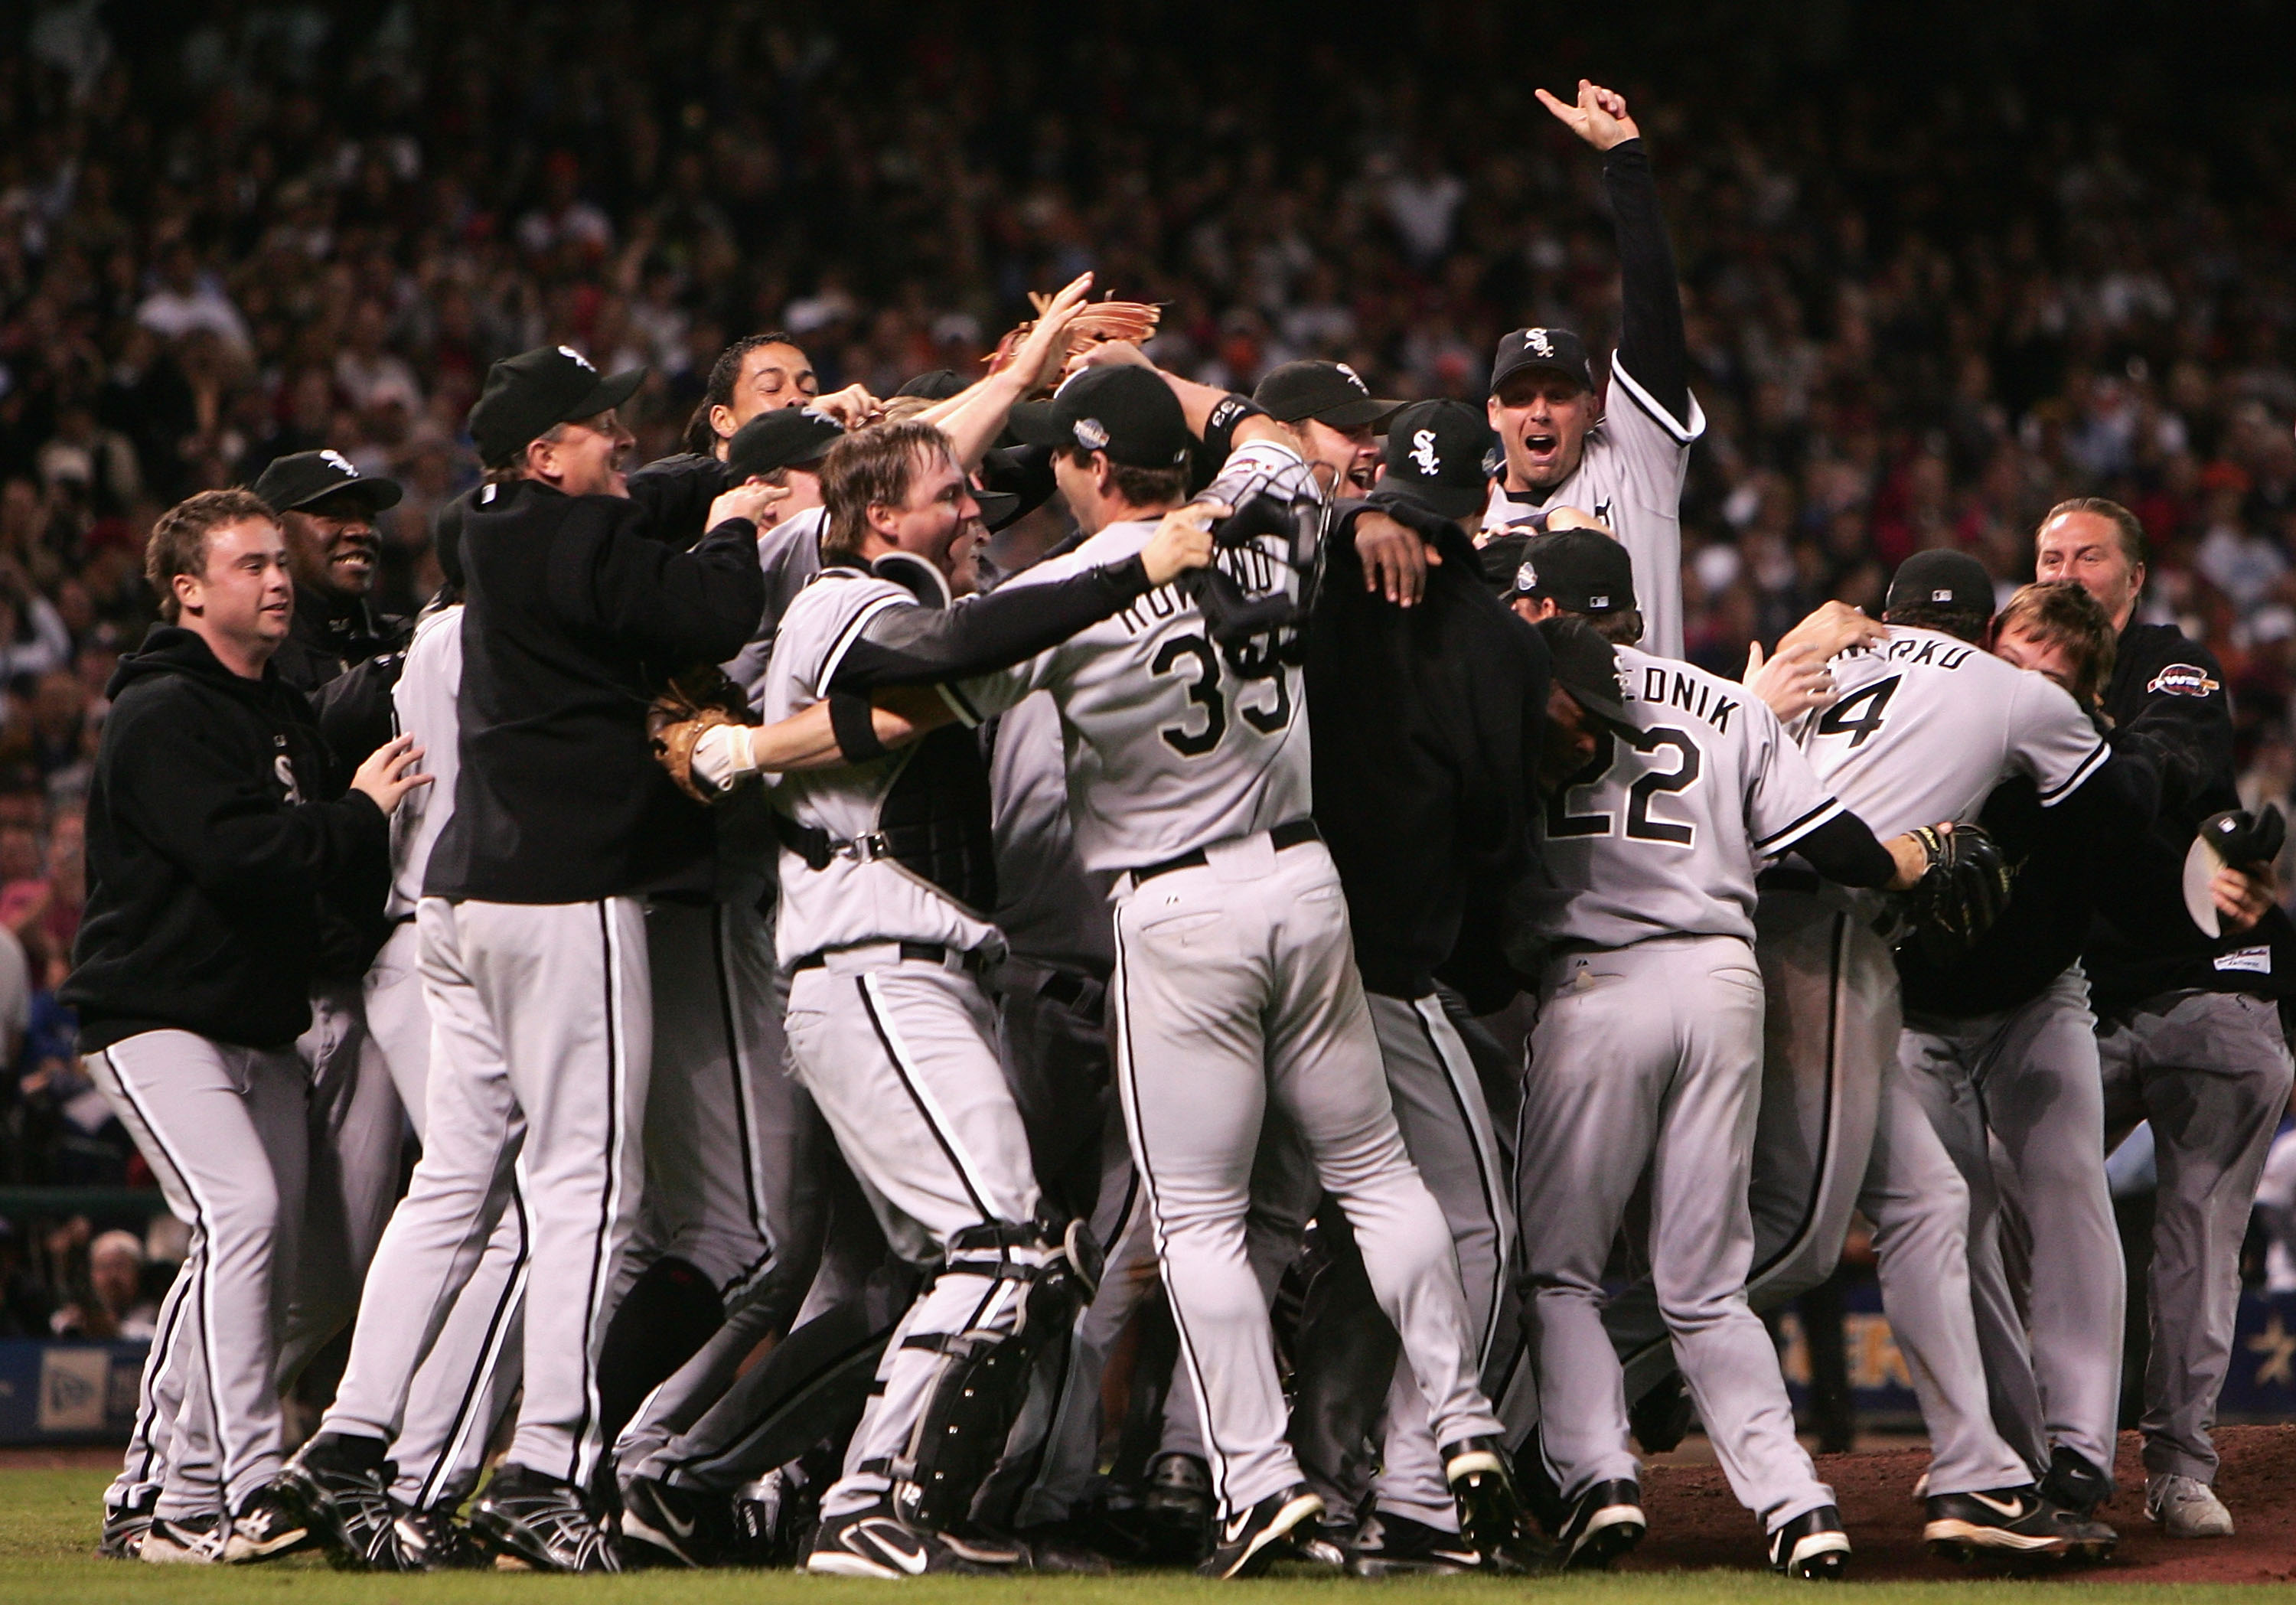 People Forget How Special And Impressive The 2005 White Sox Playoff Run Was